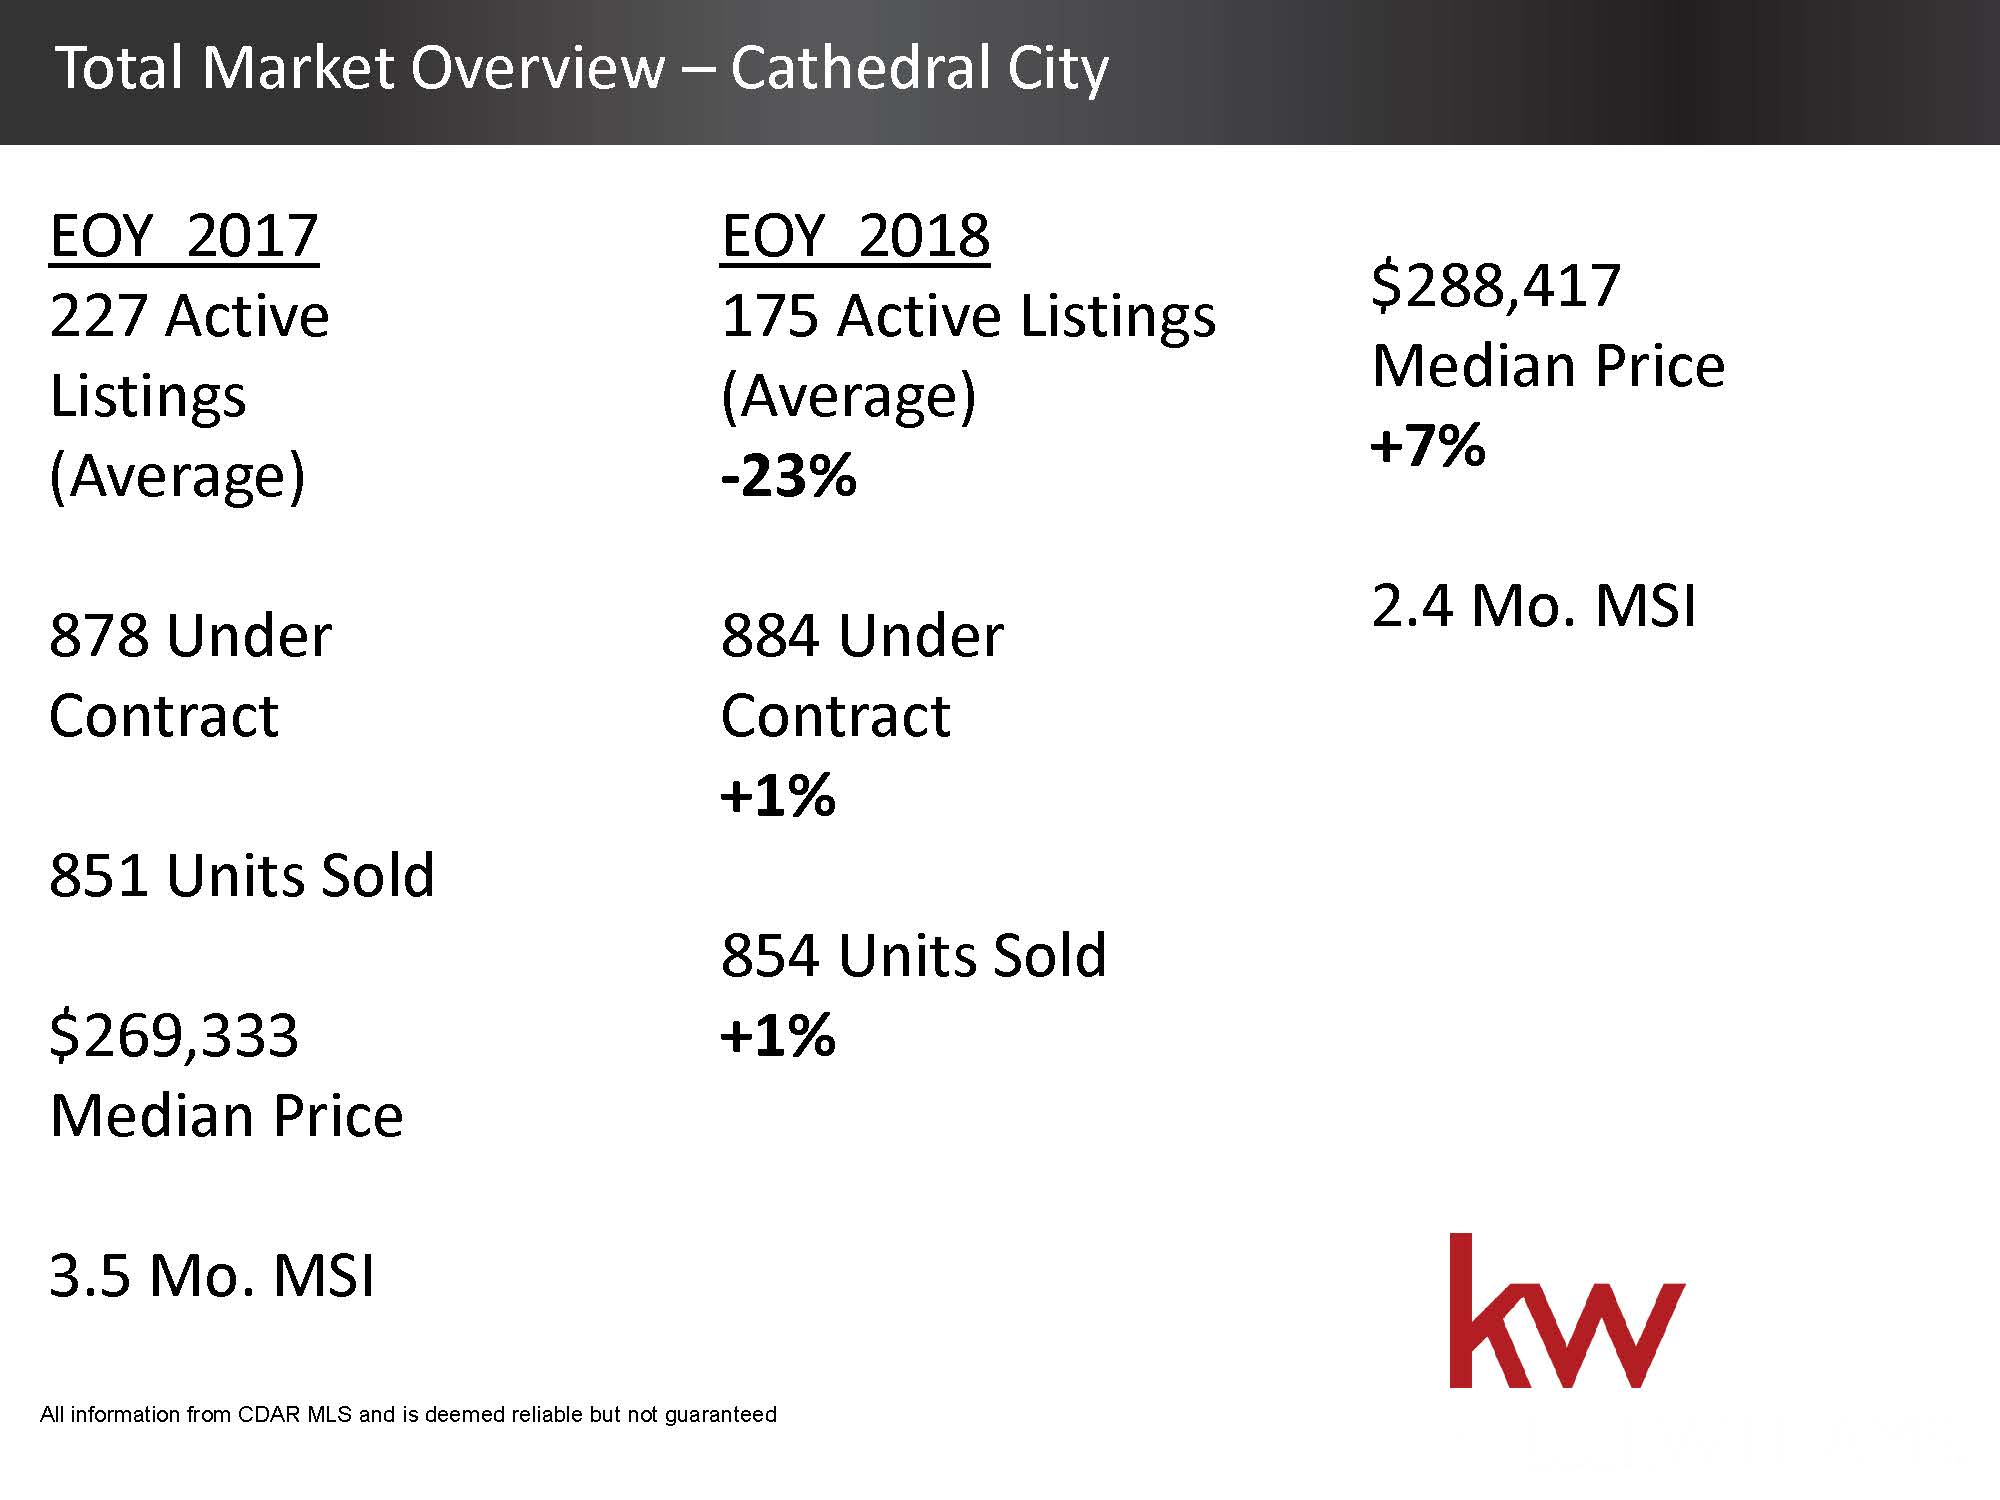 Total Housing Market 2018 Overview - Cathedral City